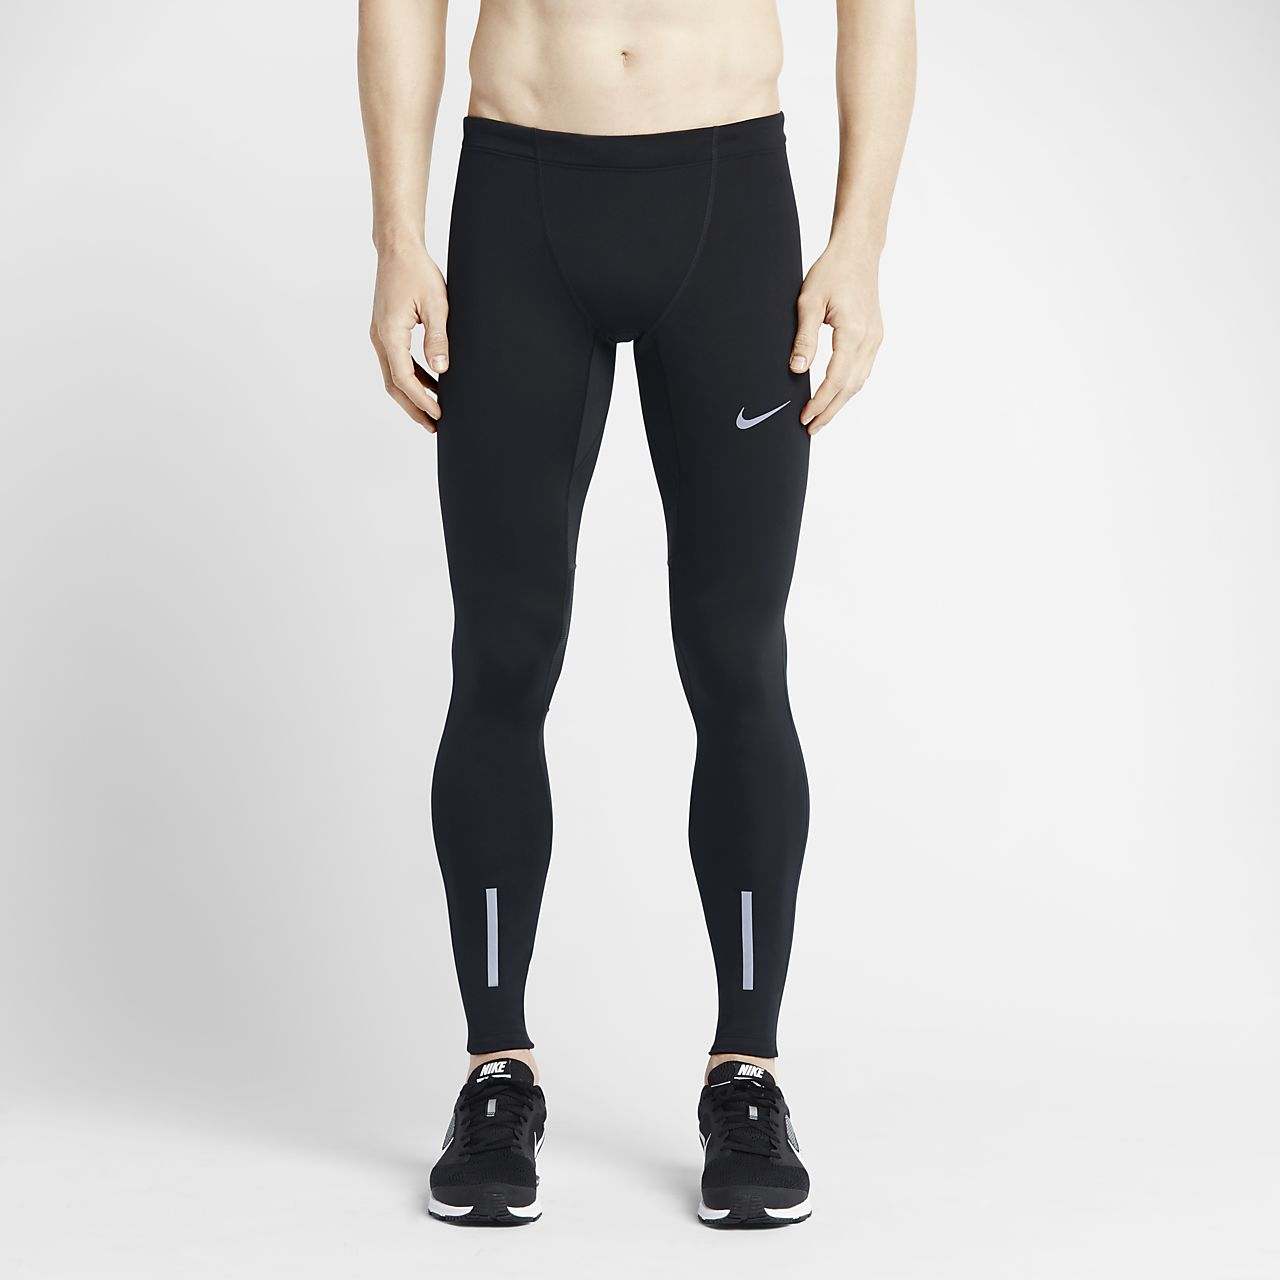 Nike Power Tech Men's Running Tights